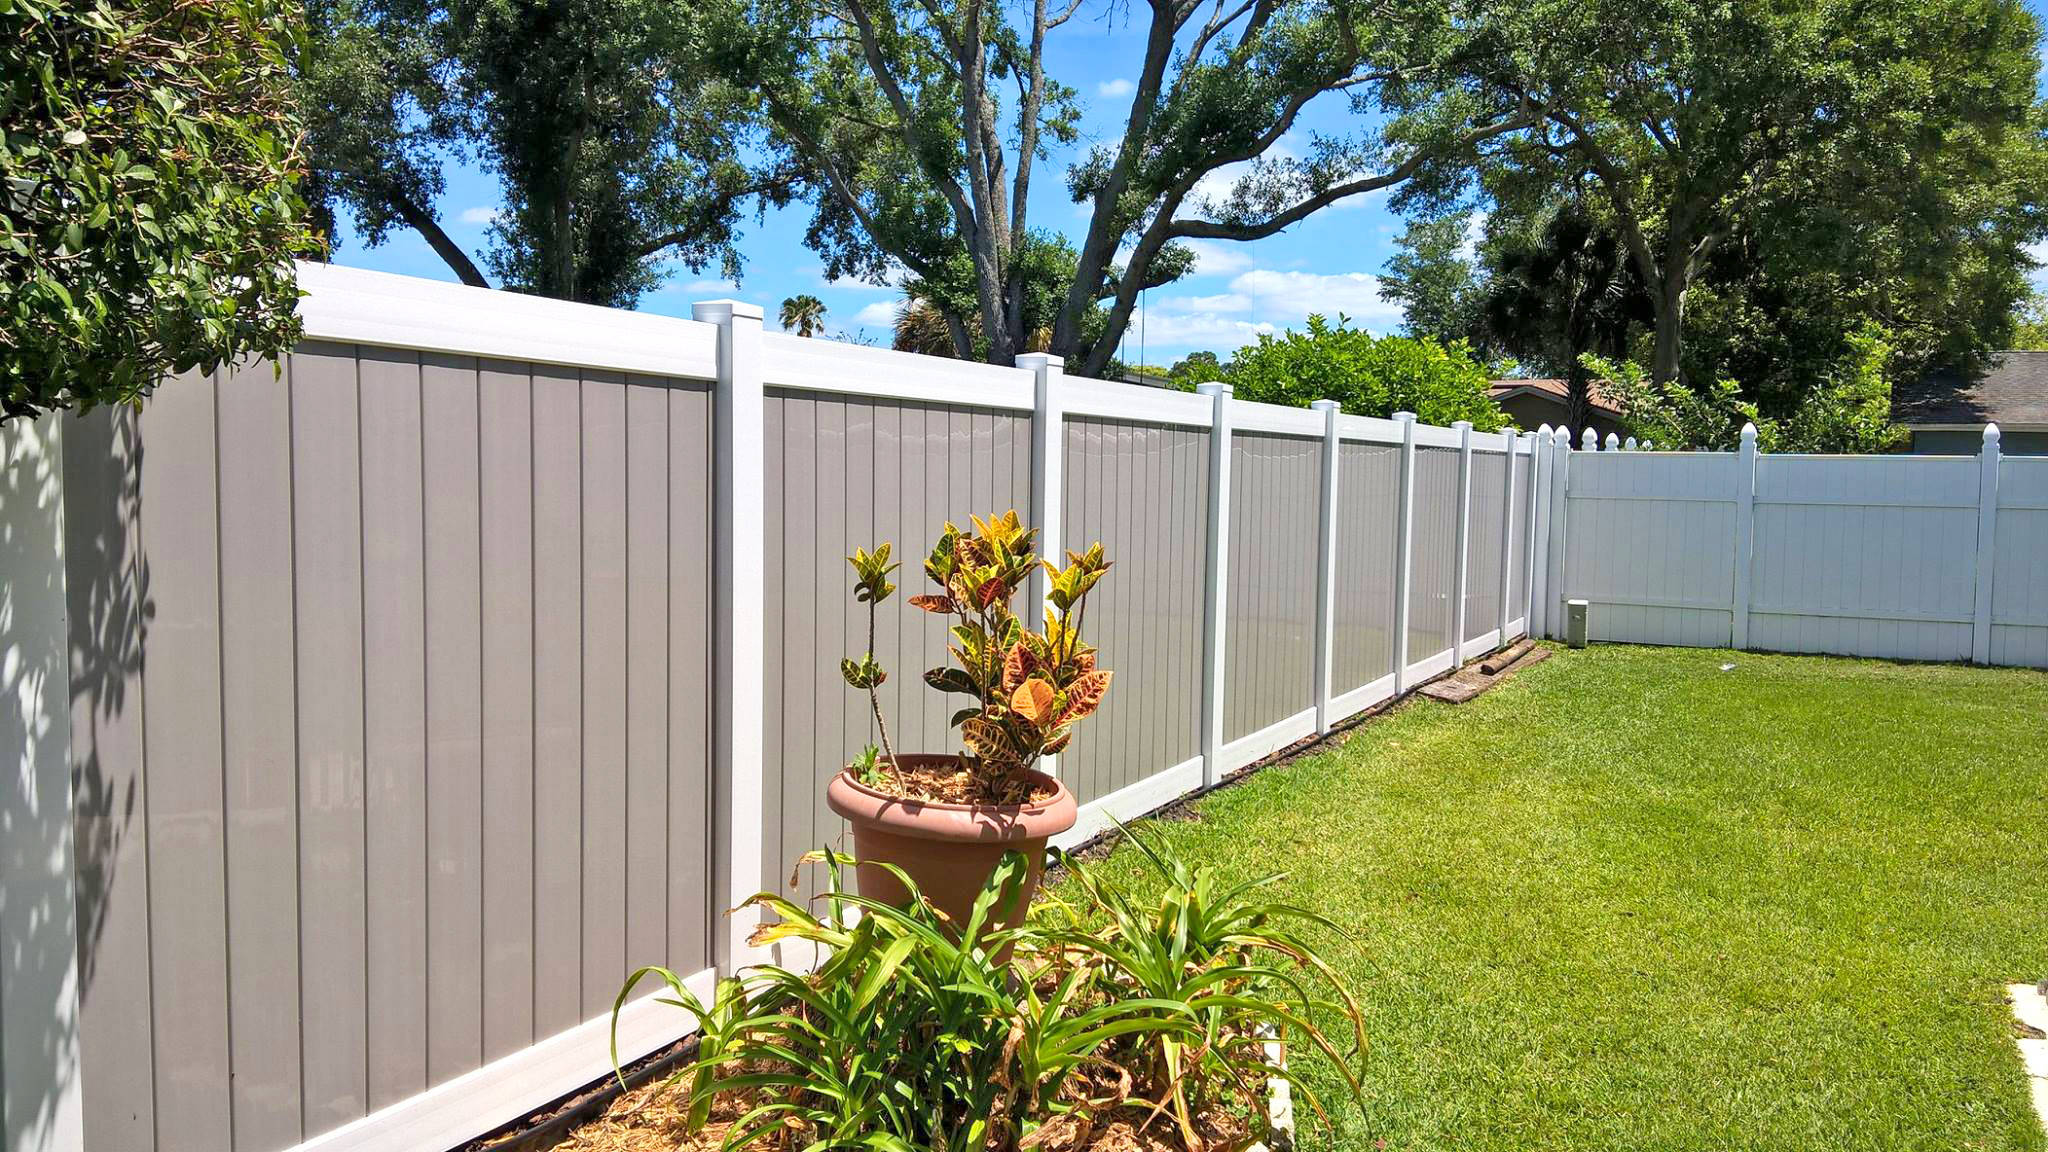 What Fence Material Will Last the Longest in the Florida Sun?